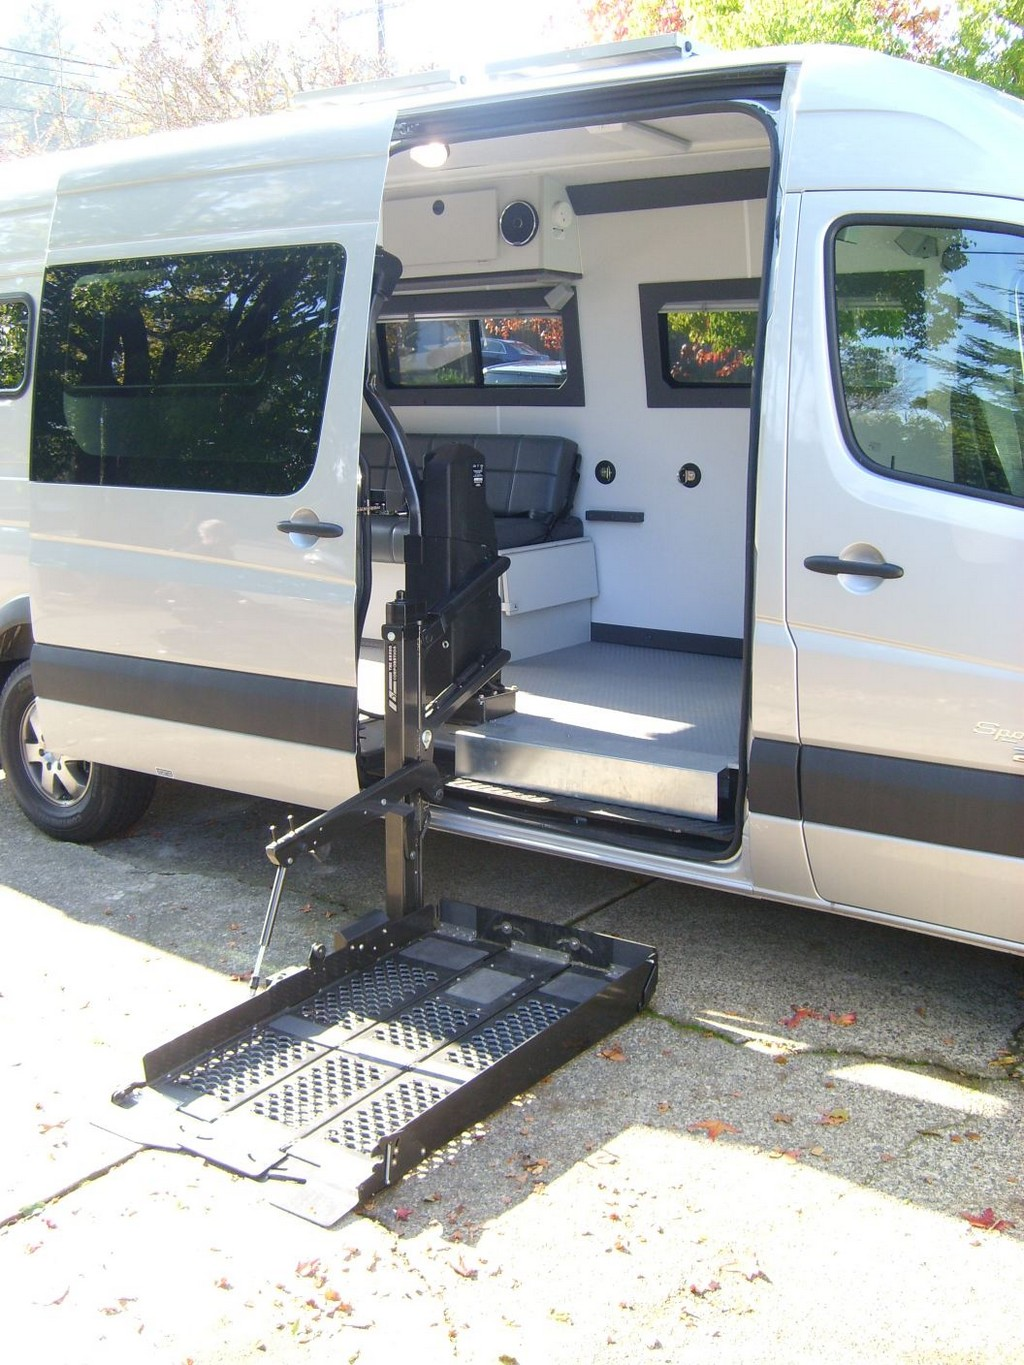 Creative Compact Two Berth With Rear Wheelchair LiftLockdown Floor FixingsFully Equipped  About JC Leisure Our Range Of Motorhomes Includes Quality Models From British Built Tribute, Autocruise, Autosleeper Bessacarr, Swift And